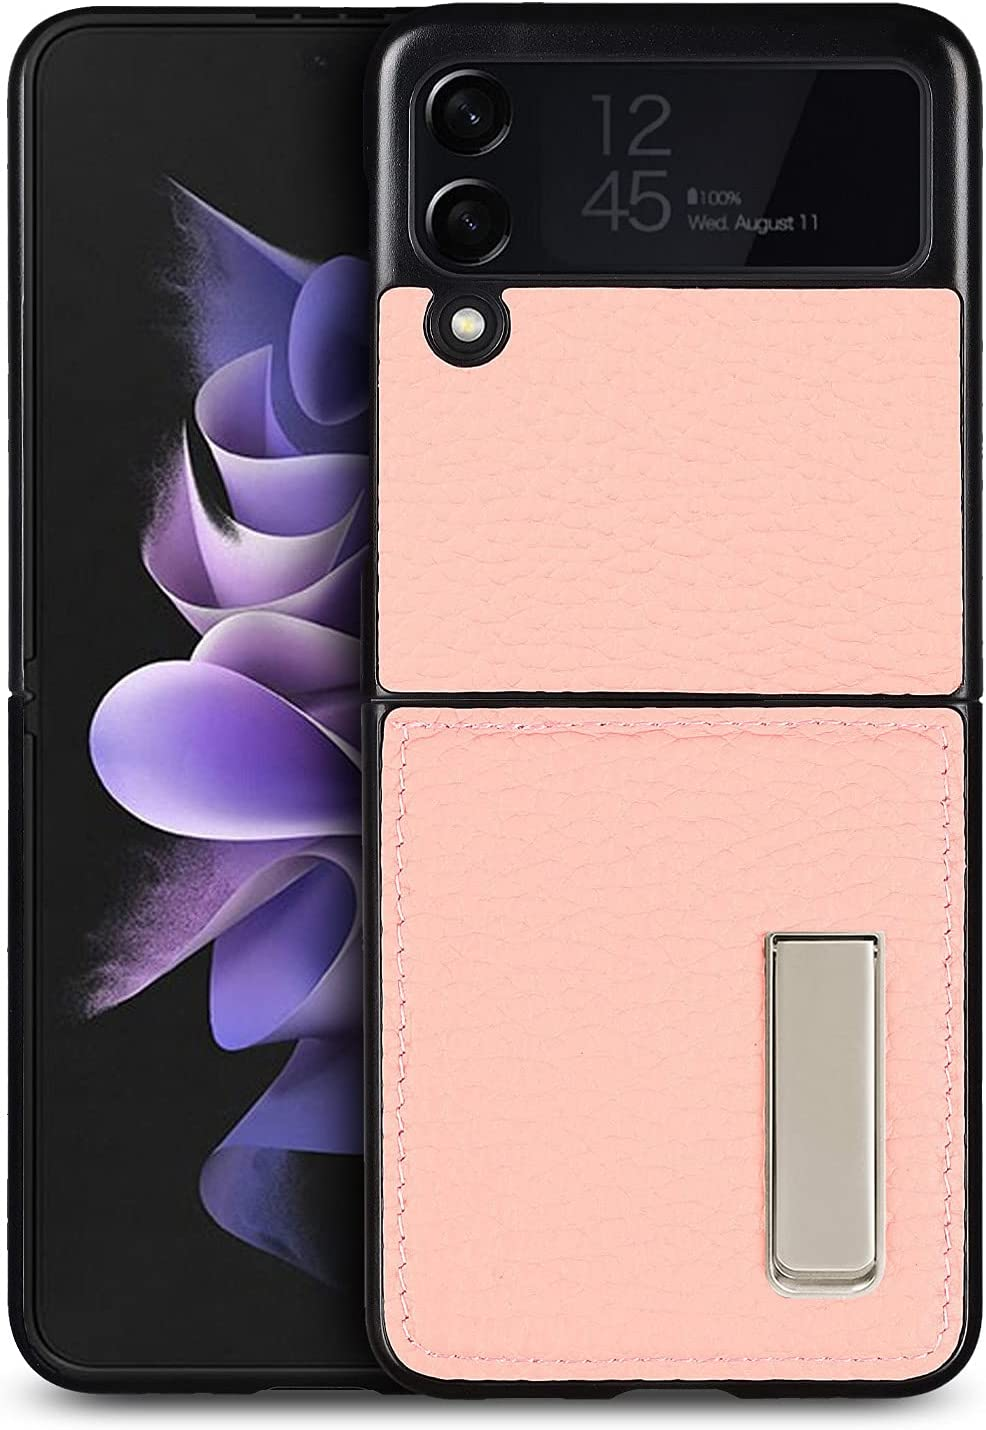 iCoverCase Designed for Samsung Galaxy Z Flip 3 5G Case (2021) with Stand, Magnetic Kickstand Ultra-Thin Genuine Leather Protective Case - (Rose Gold)